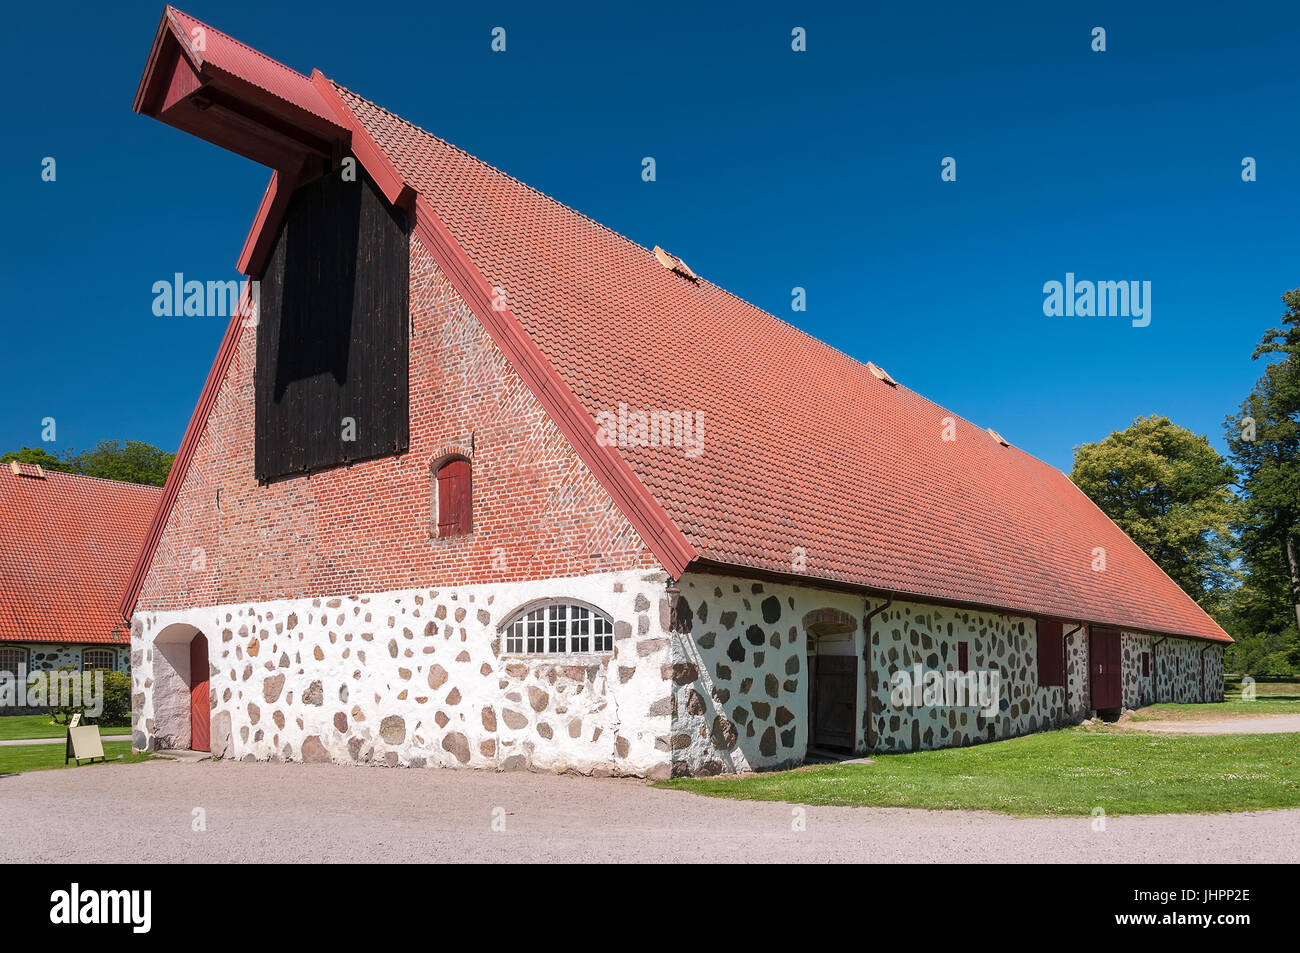 An old stone barn on the grounds of wanas castle in the rural countryside of Swedens Skane region. - Stock Image